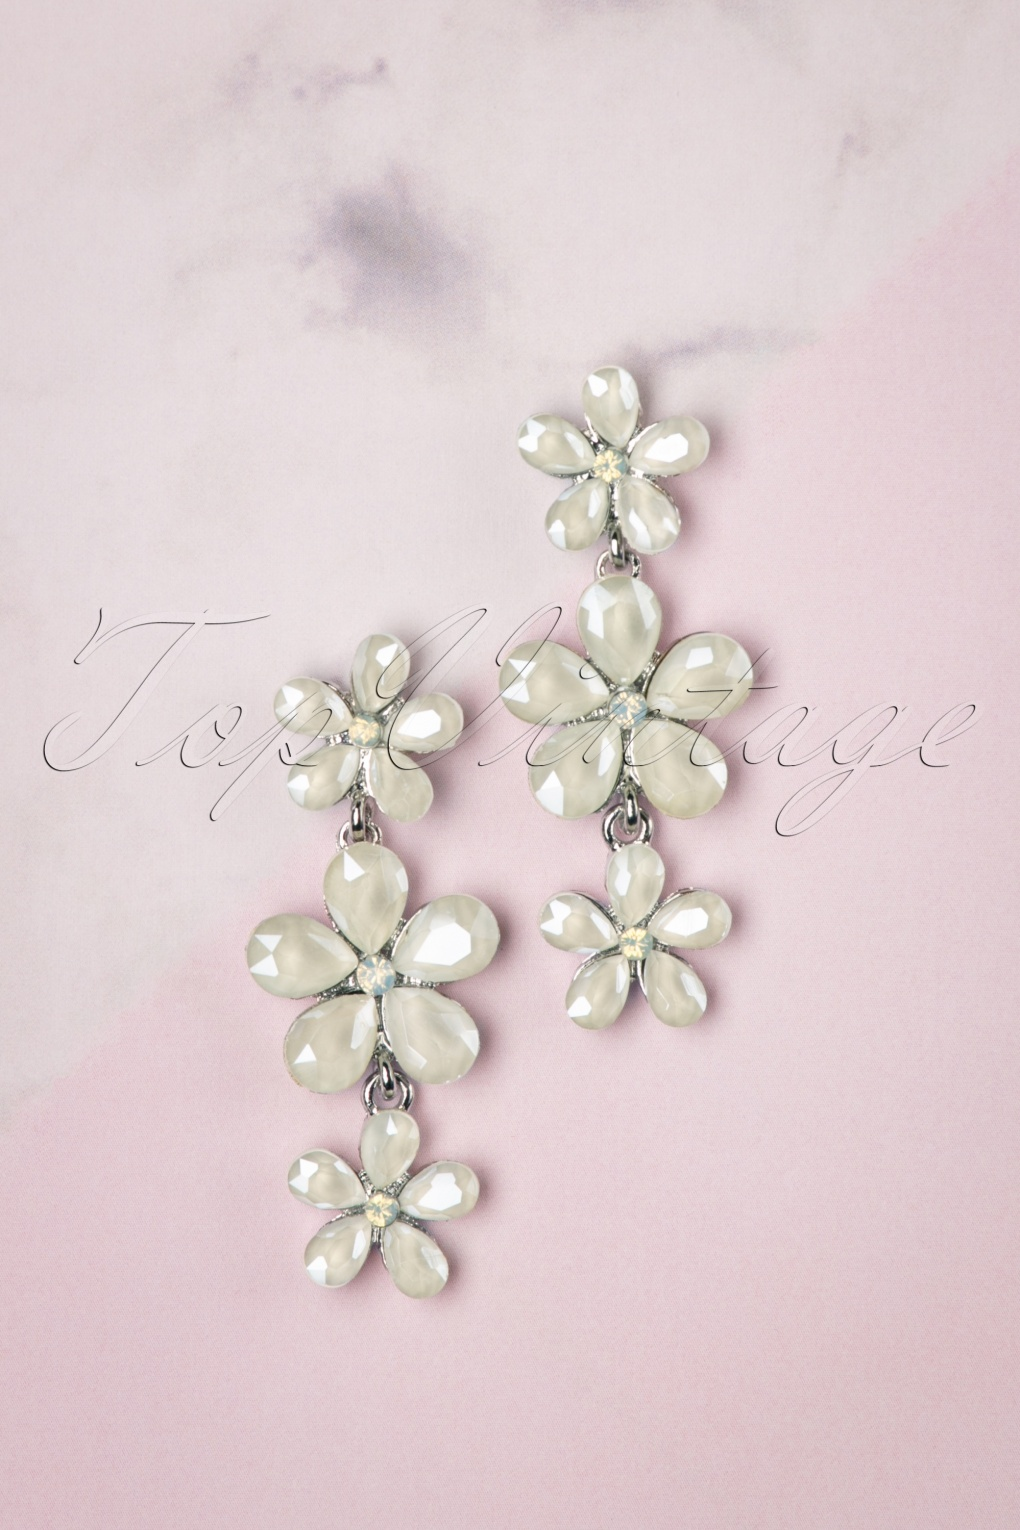 50s Jewelry: Earrings, Necklace, Brooch, Bracelet 50s Dangling Flower Earrings in Ivory £10.82 AT vintagedancer.com